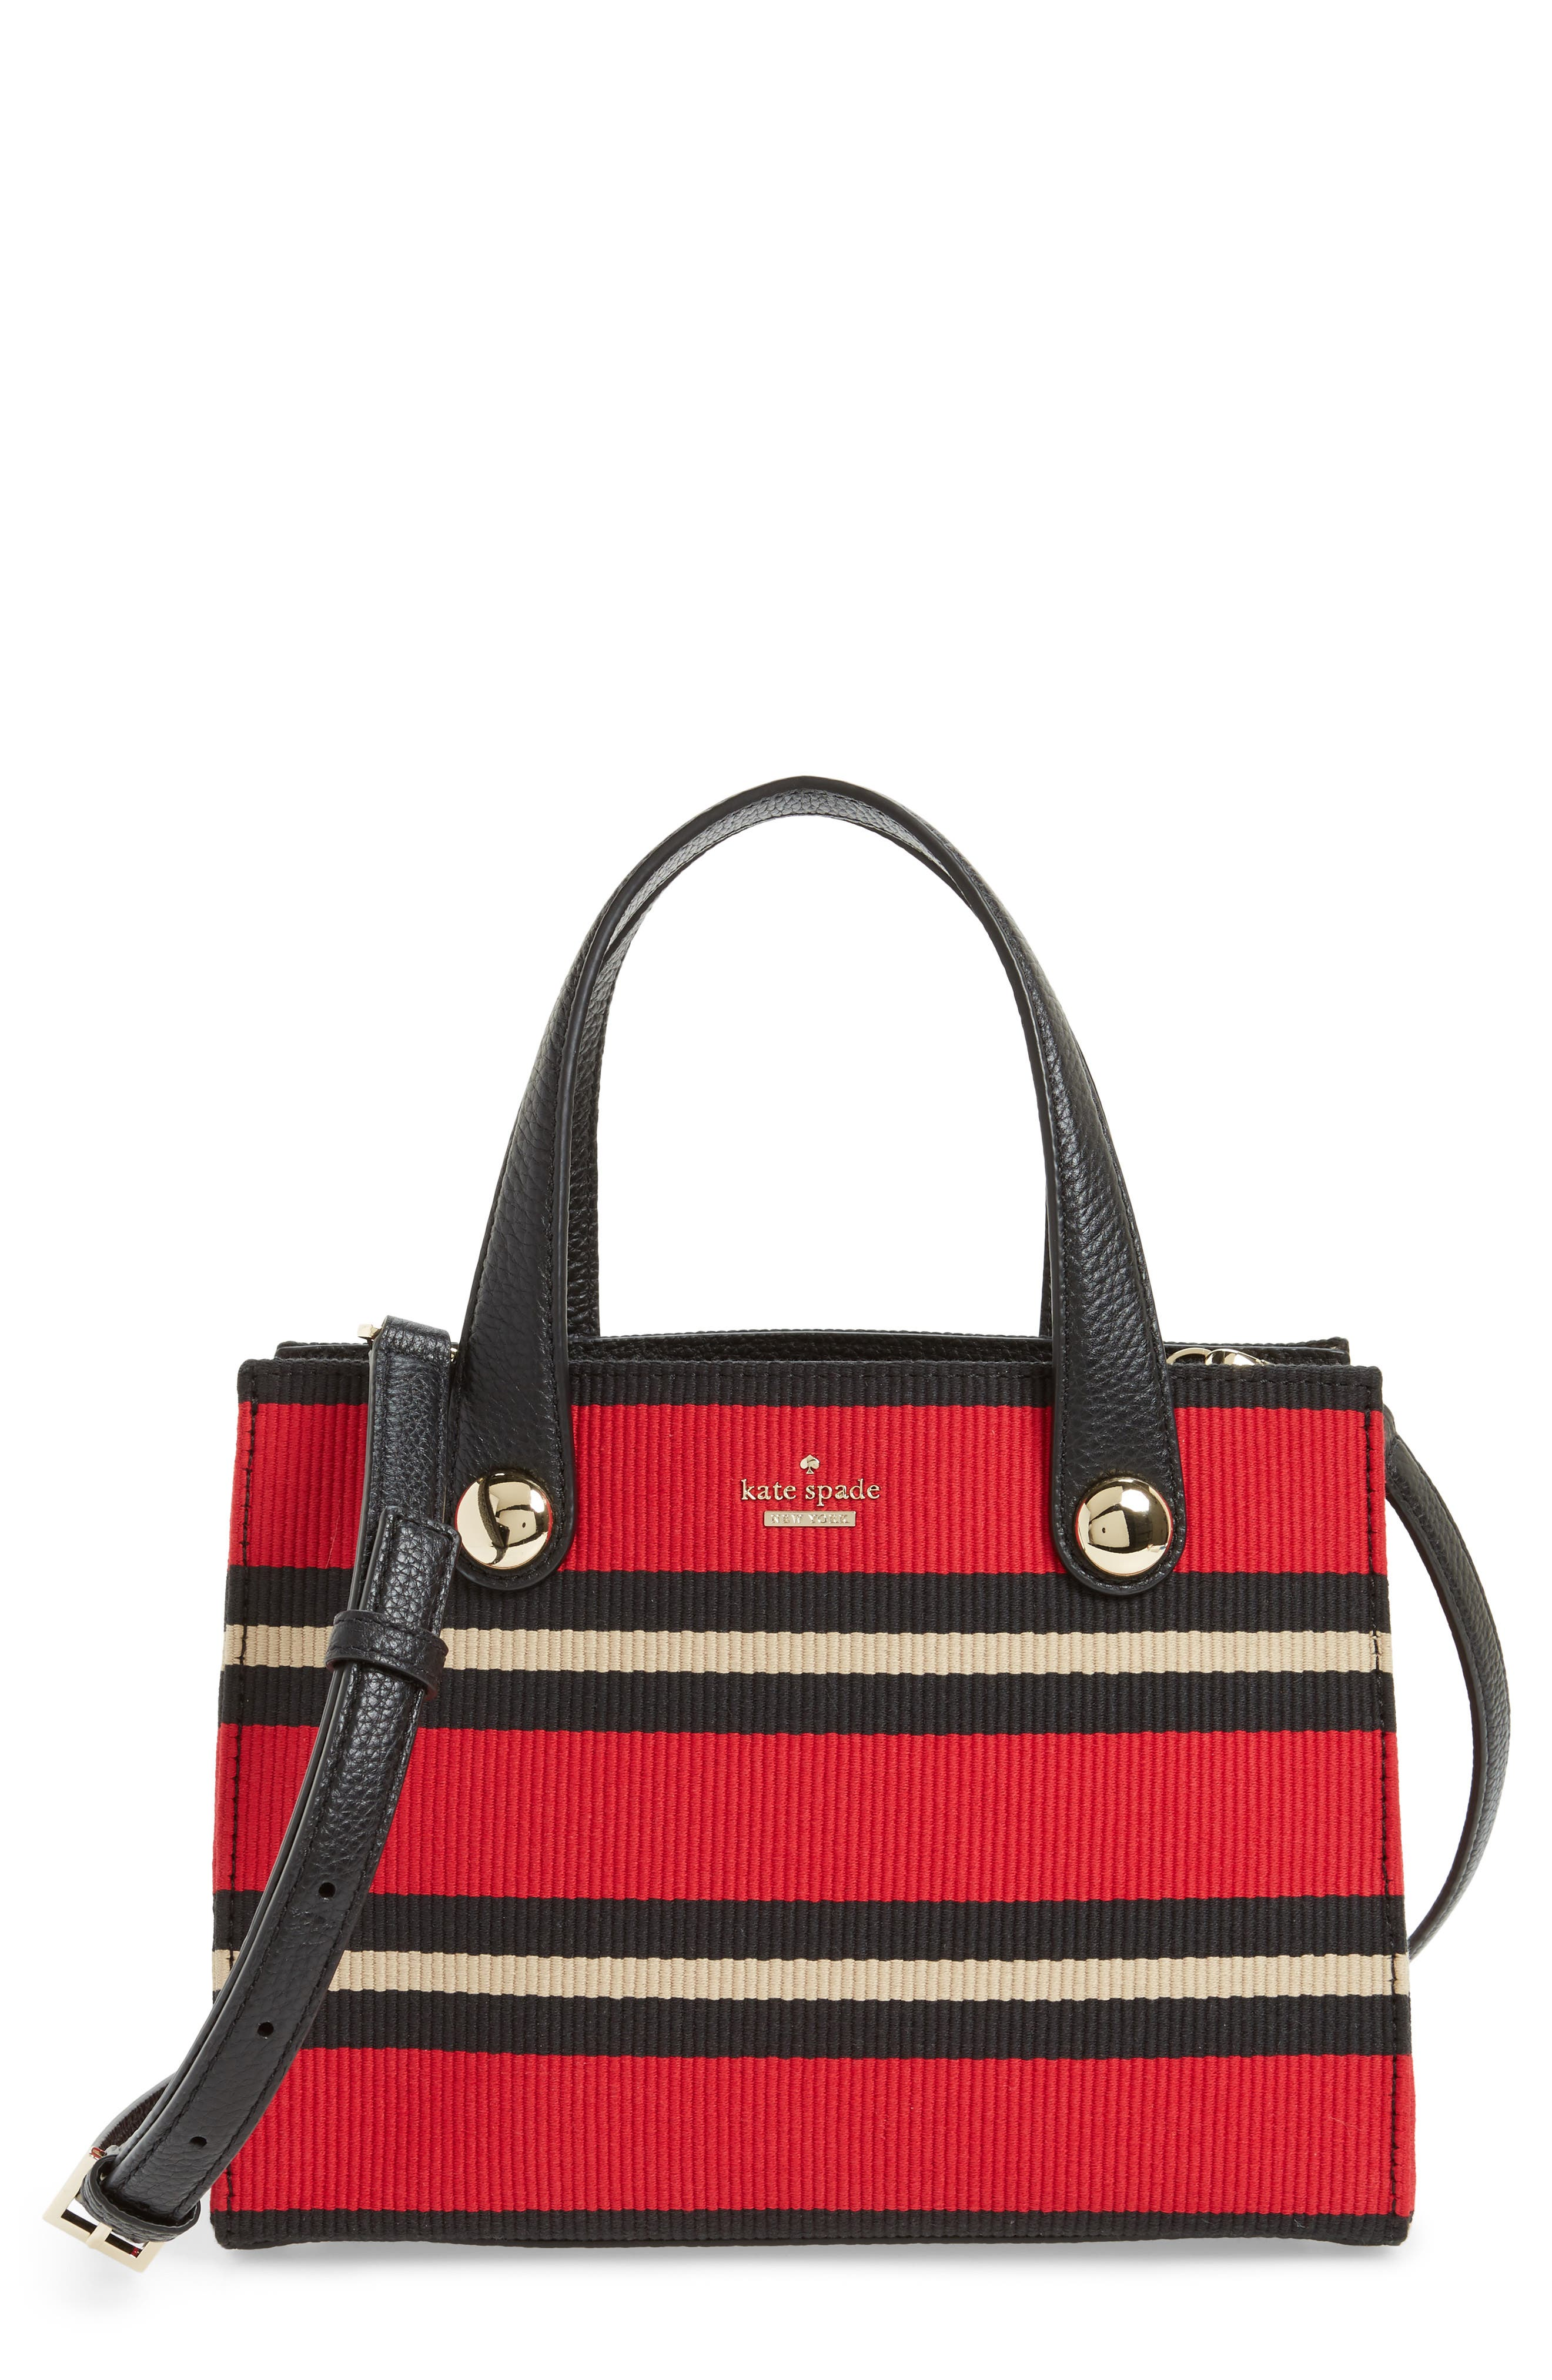 stewart street - little joy stripe grosgrain satchel,                             Main thumbnail 1, color,                             Multi